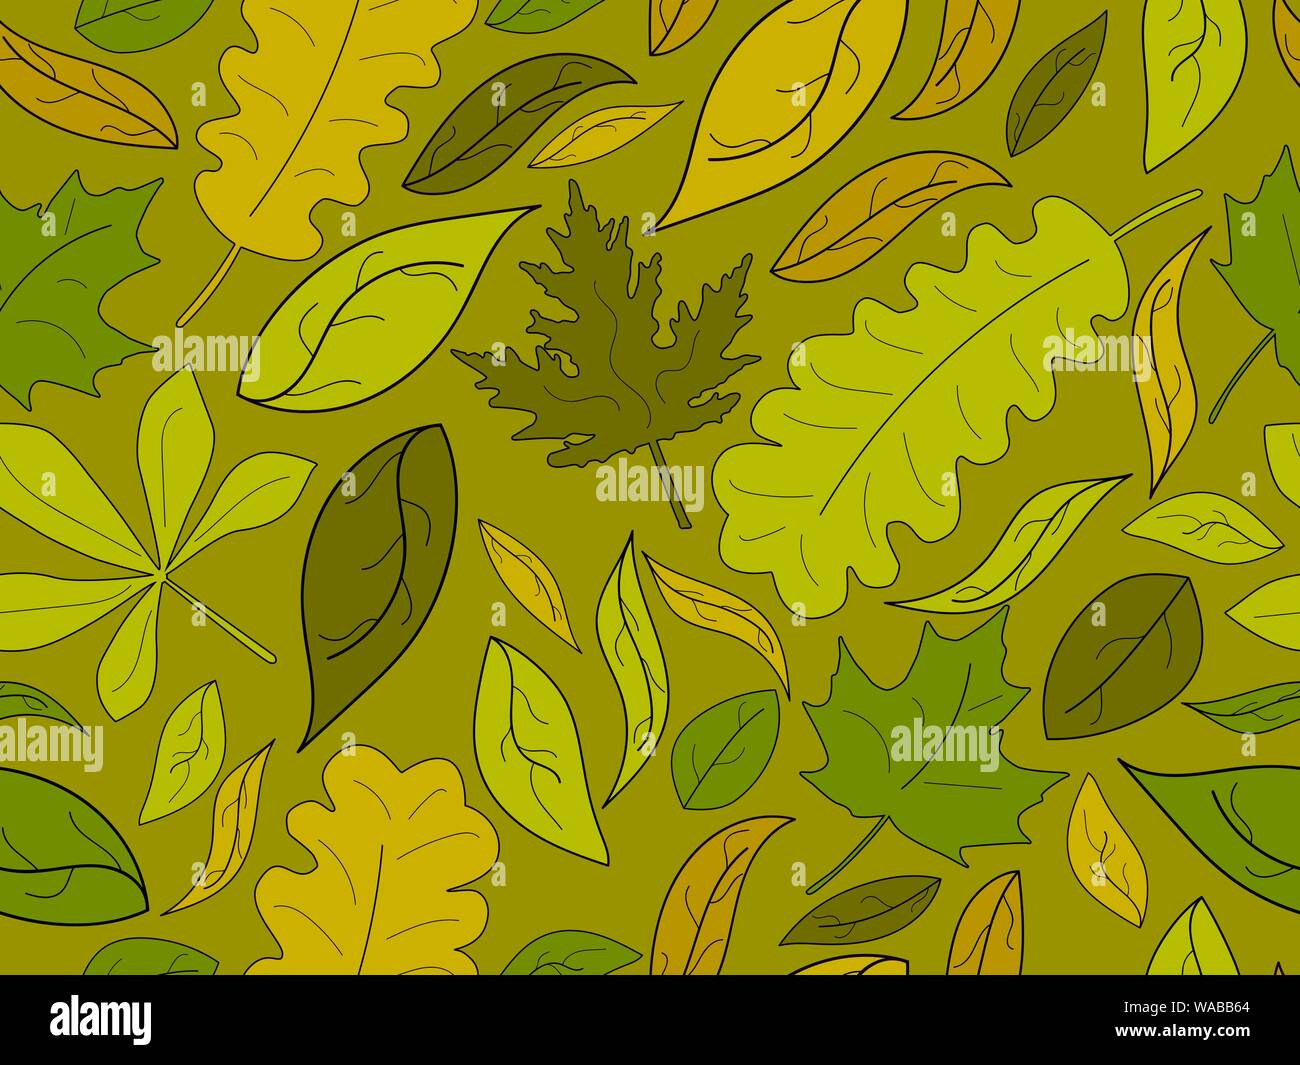 Autumn seamless pattern with leaves  Yellow falling leaves